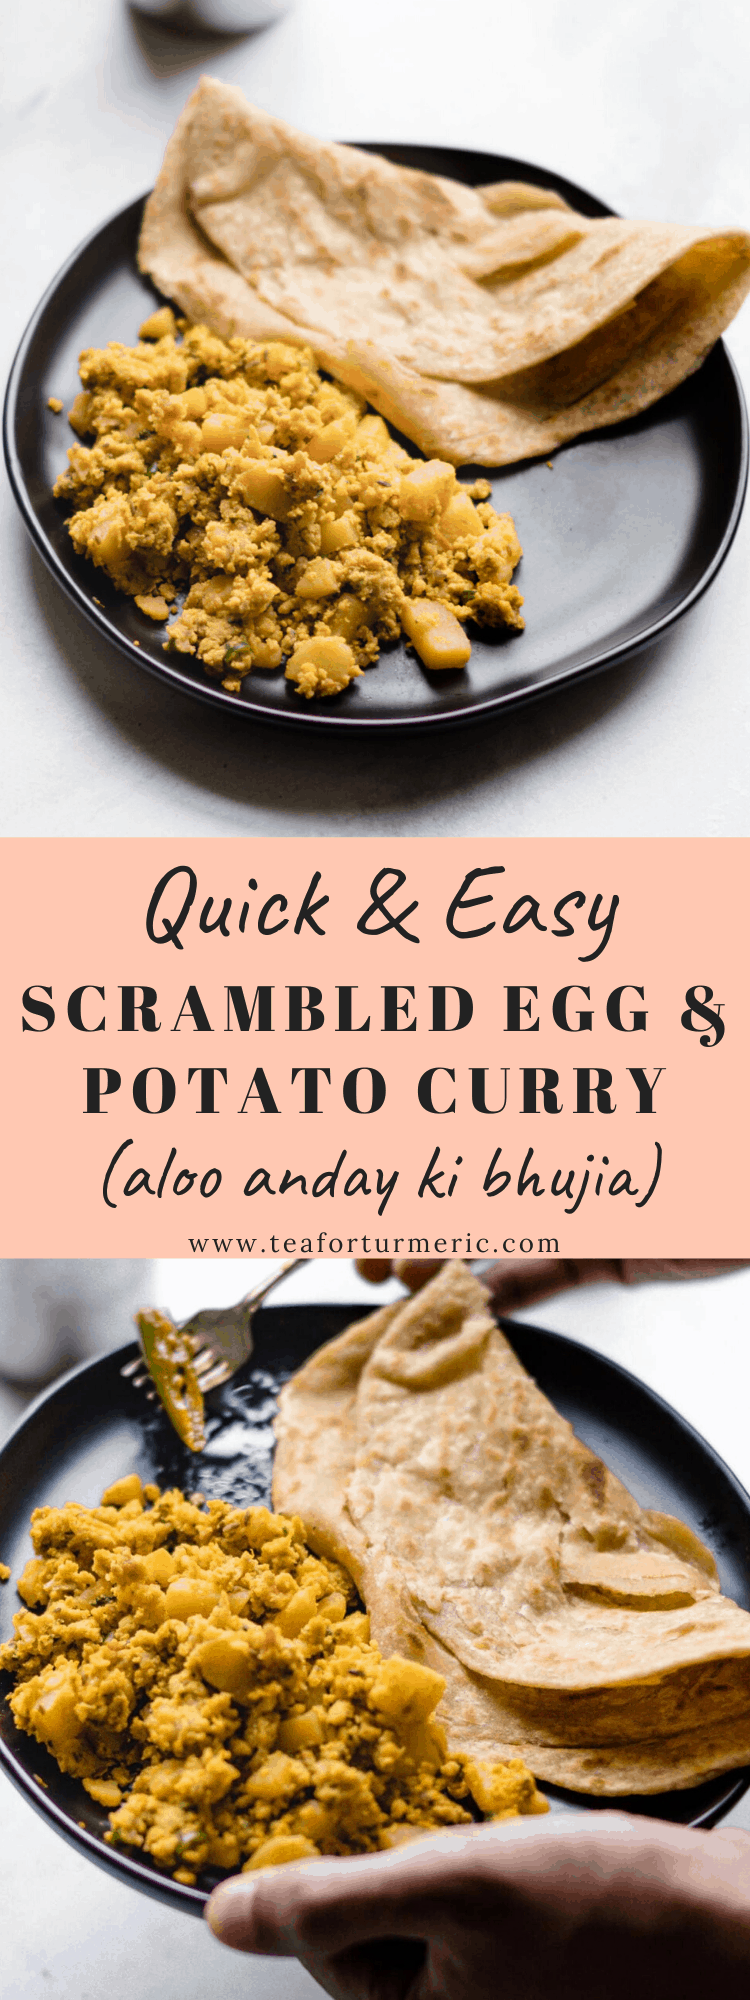 Scrambled Egg and Potato curry (Aloo Anday ki Bhujia) recipe made with ingredients you likely have on hand. Quick, easy, and perfect for dinner or breakfast! #vegetarian #1pot